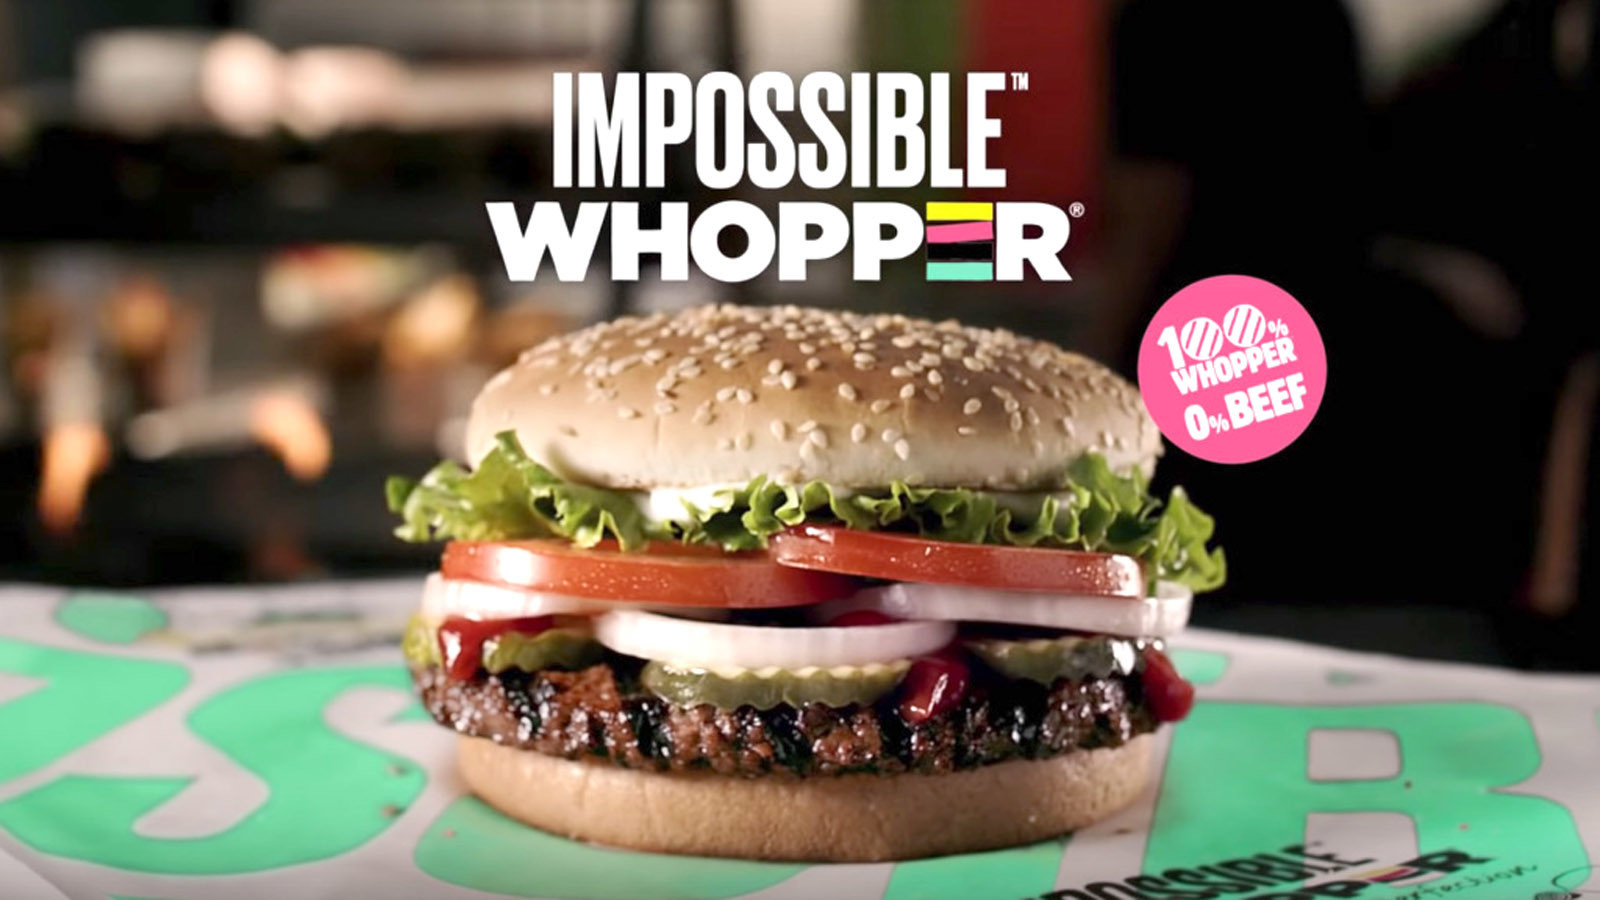 Conservative 'moms' group blasts Burger King ad for using the 'D-word'